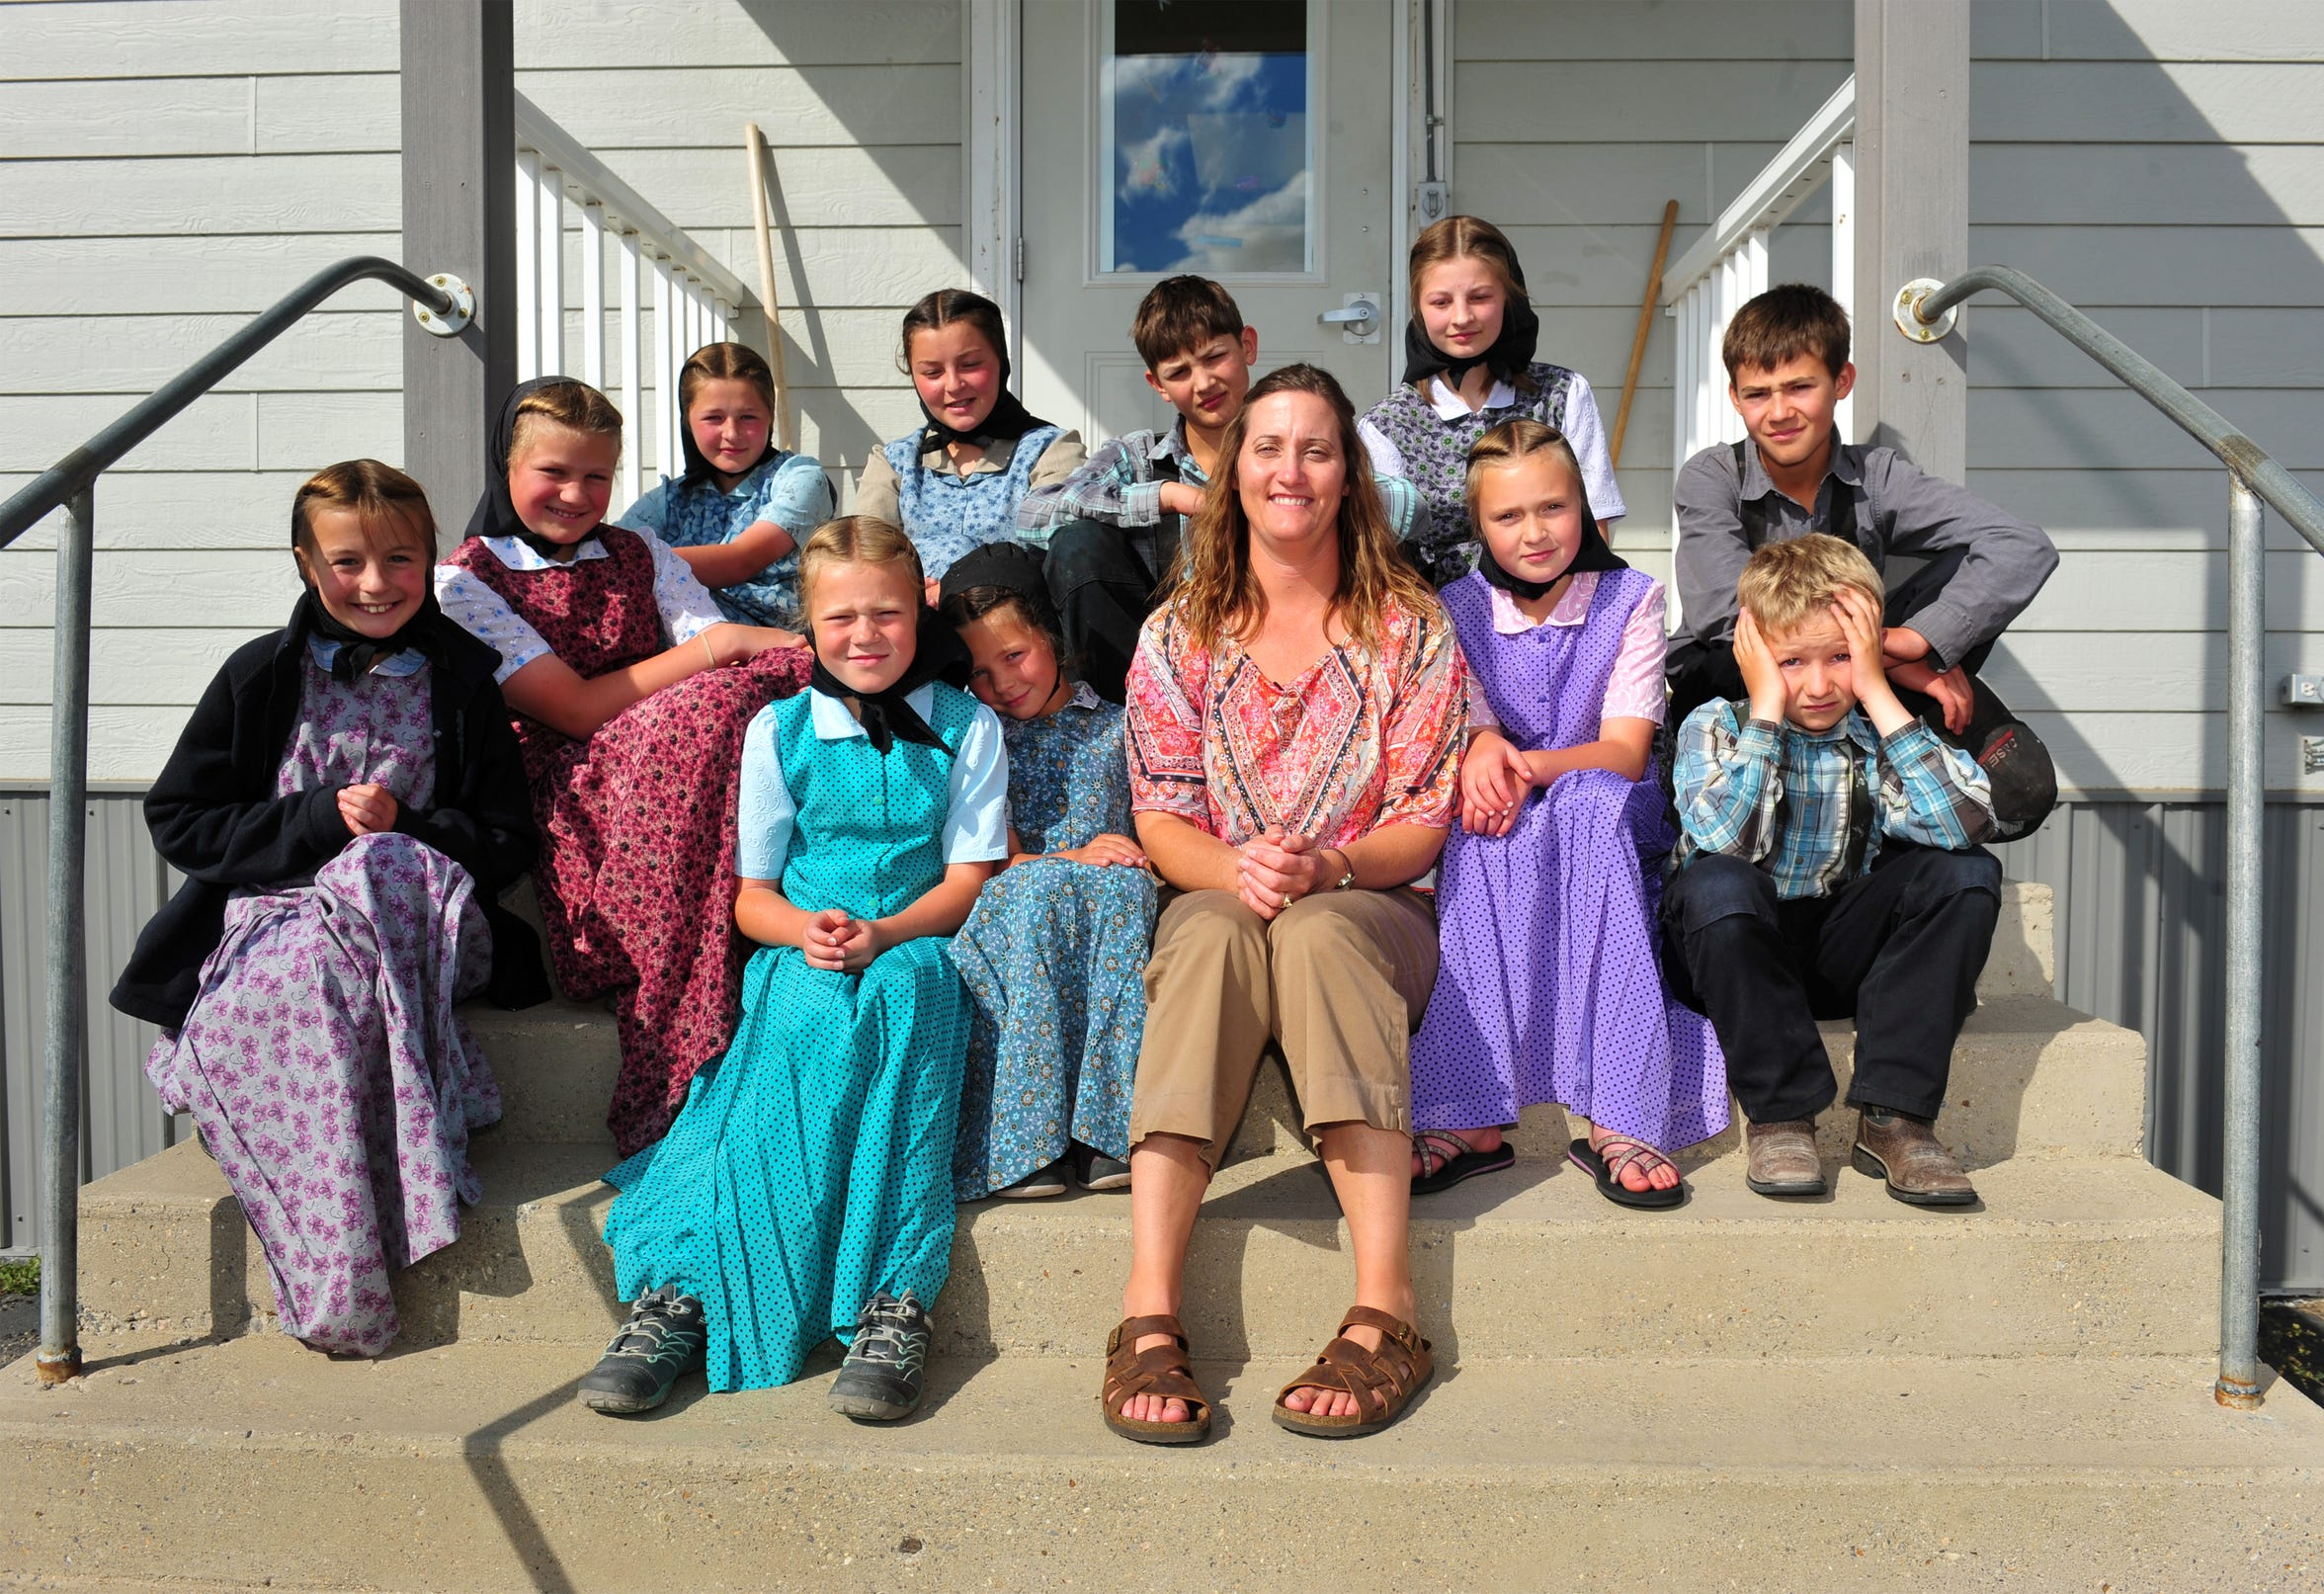 Traci Manseau sits with her class on the steps of their one-room school on the Deerfield Hutterite Colony. Manseau is a teaching veteran of 23 years and she has spent her entire career teaching in one room rural school houses.